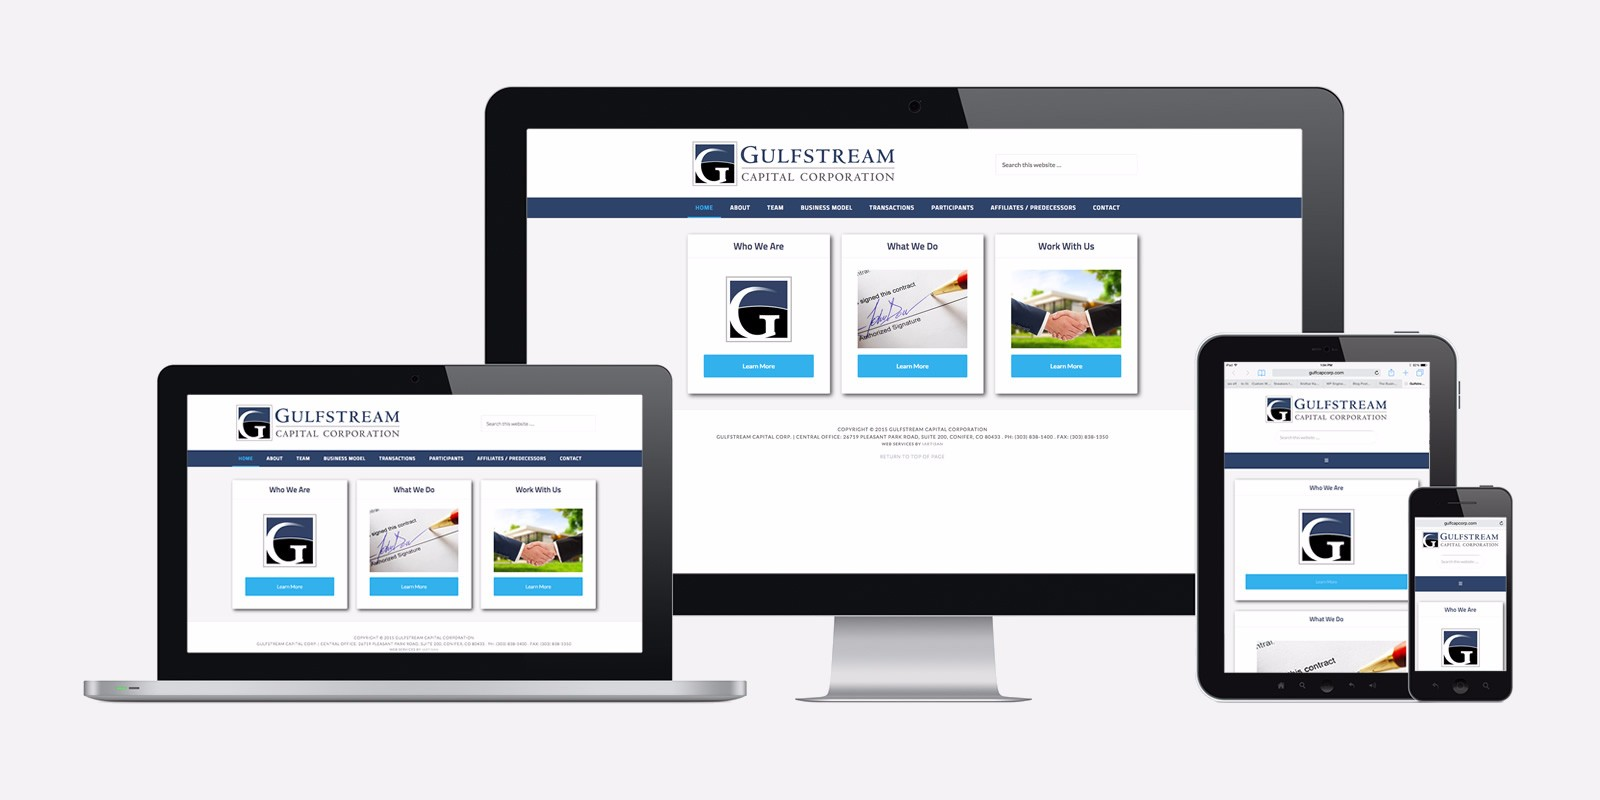 wordpress_portfolio_gulfstream_capital_v2